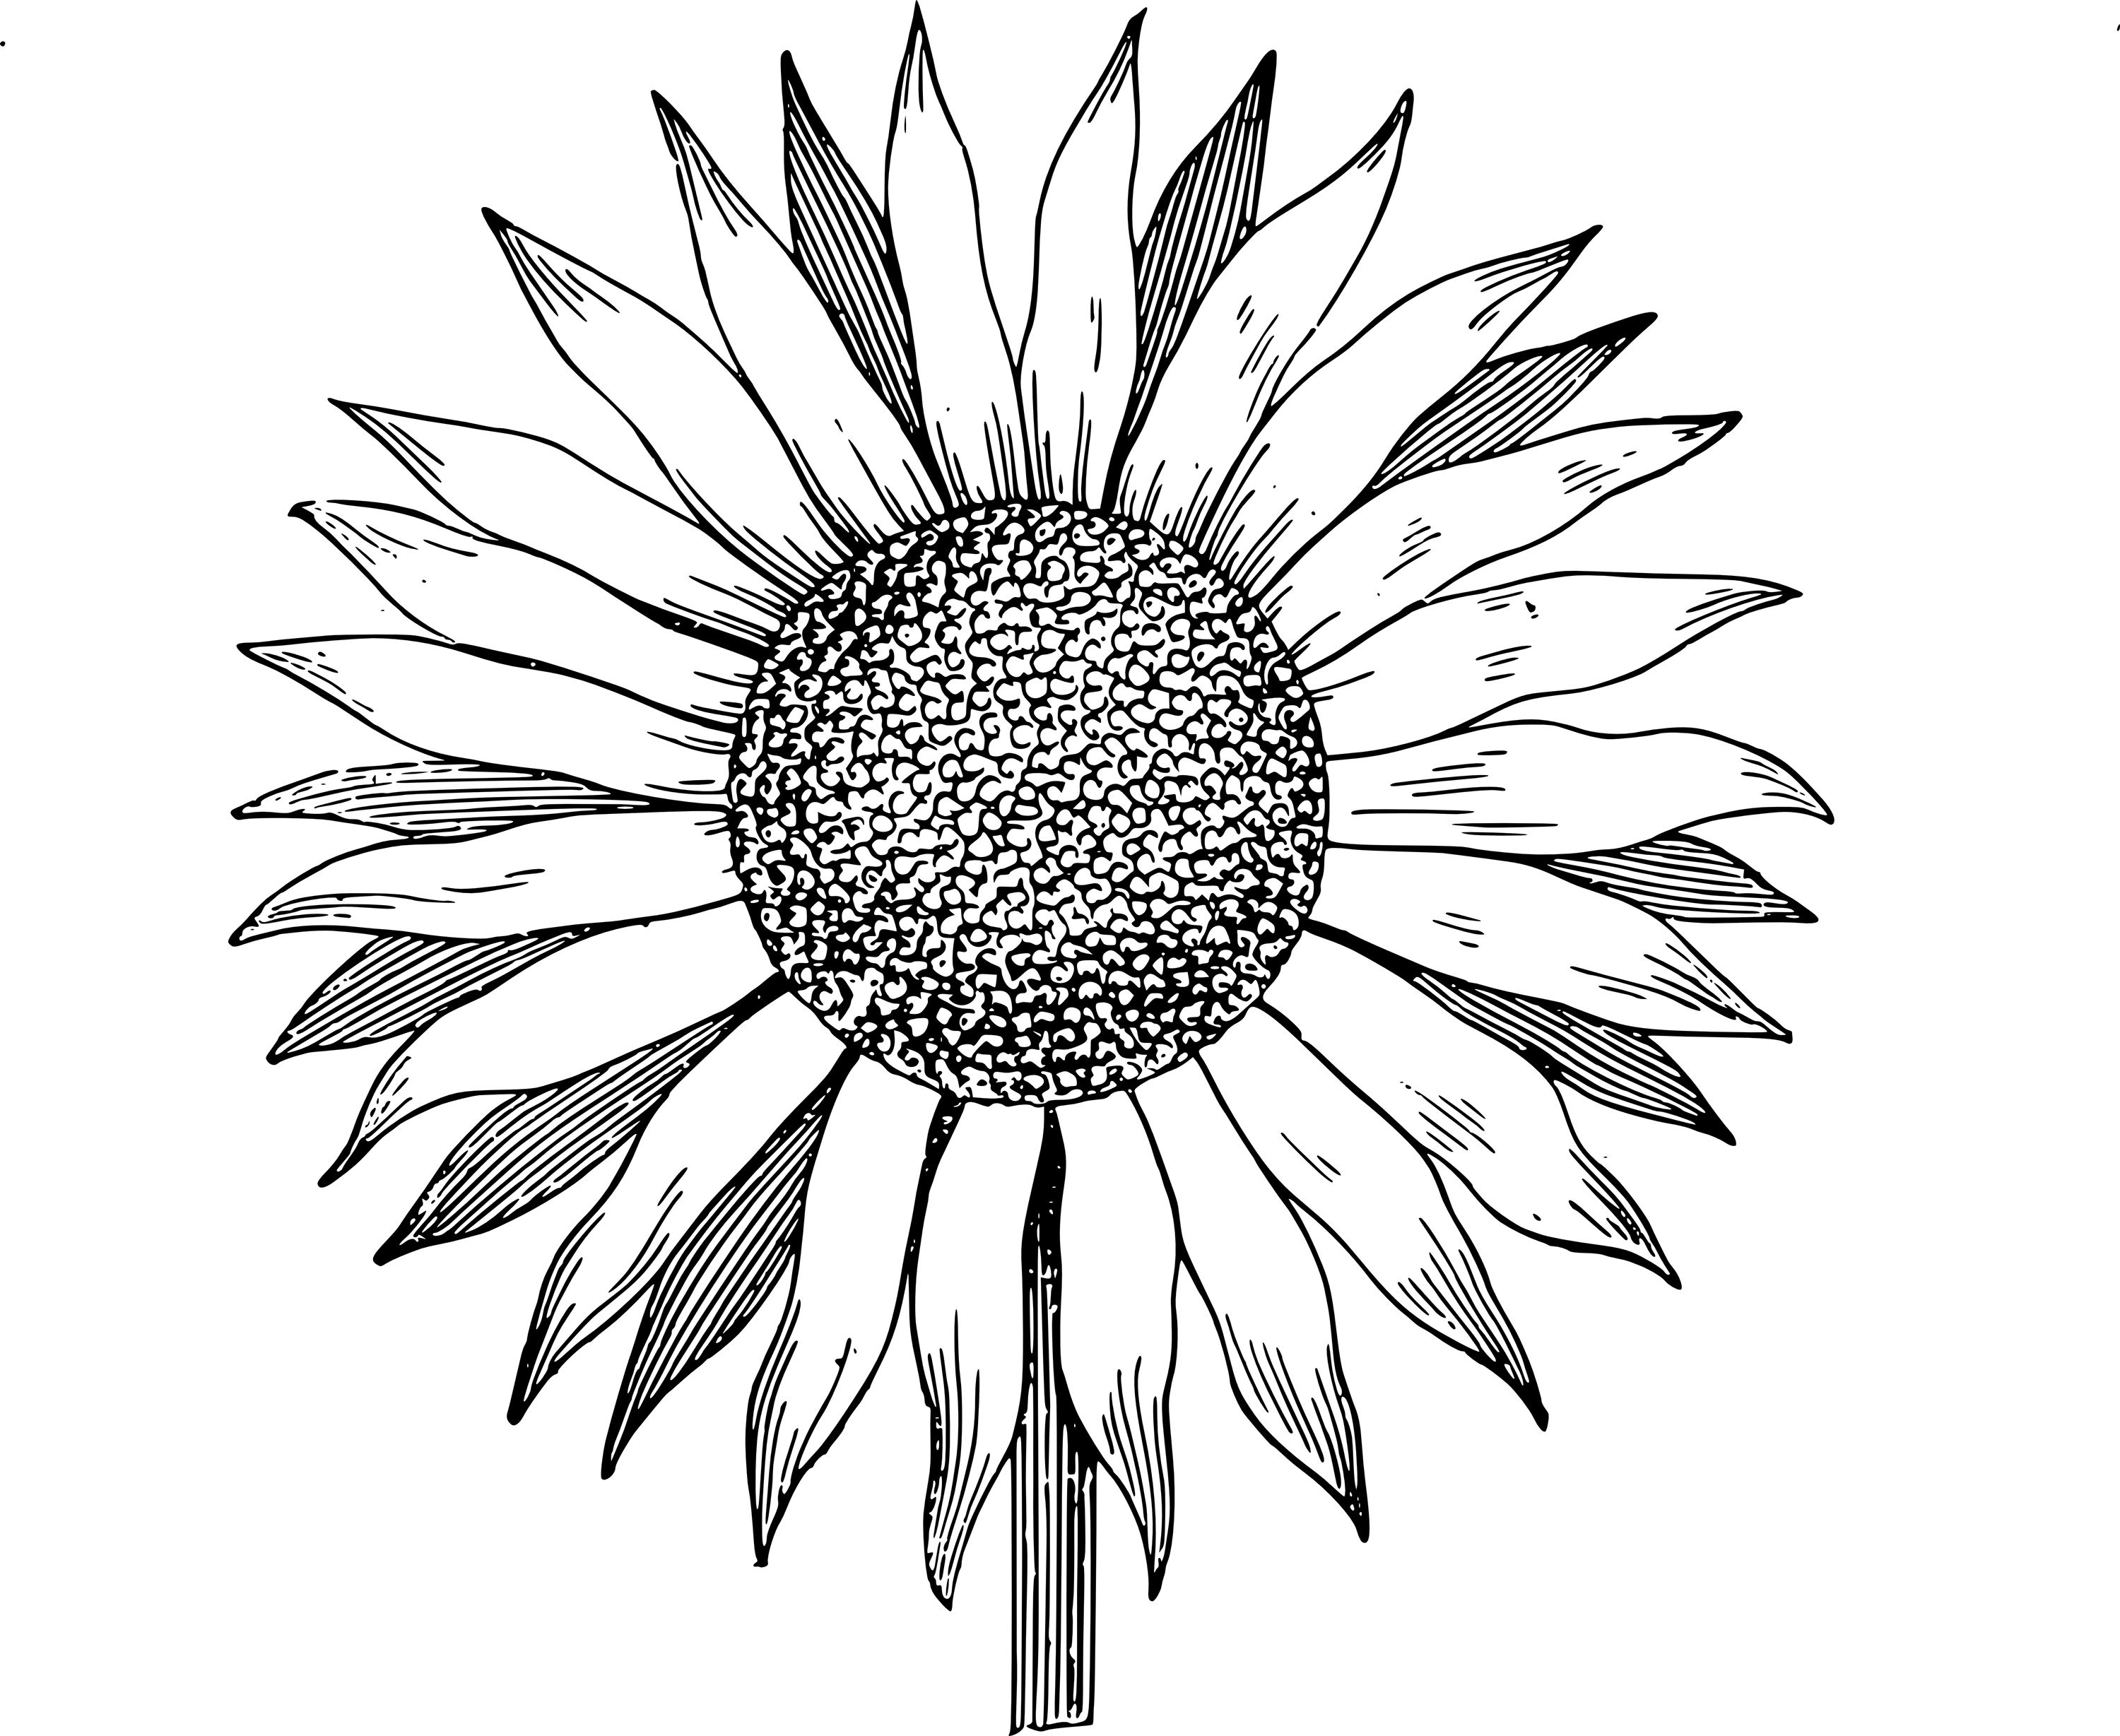 Drawn Sunflower outline (With images) Sunflower drawing